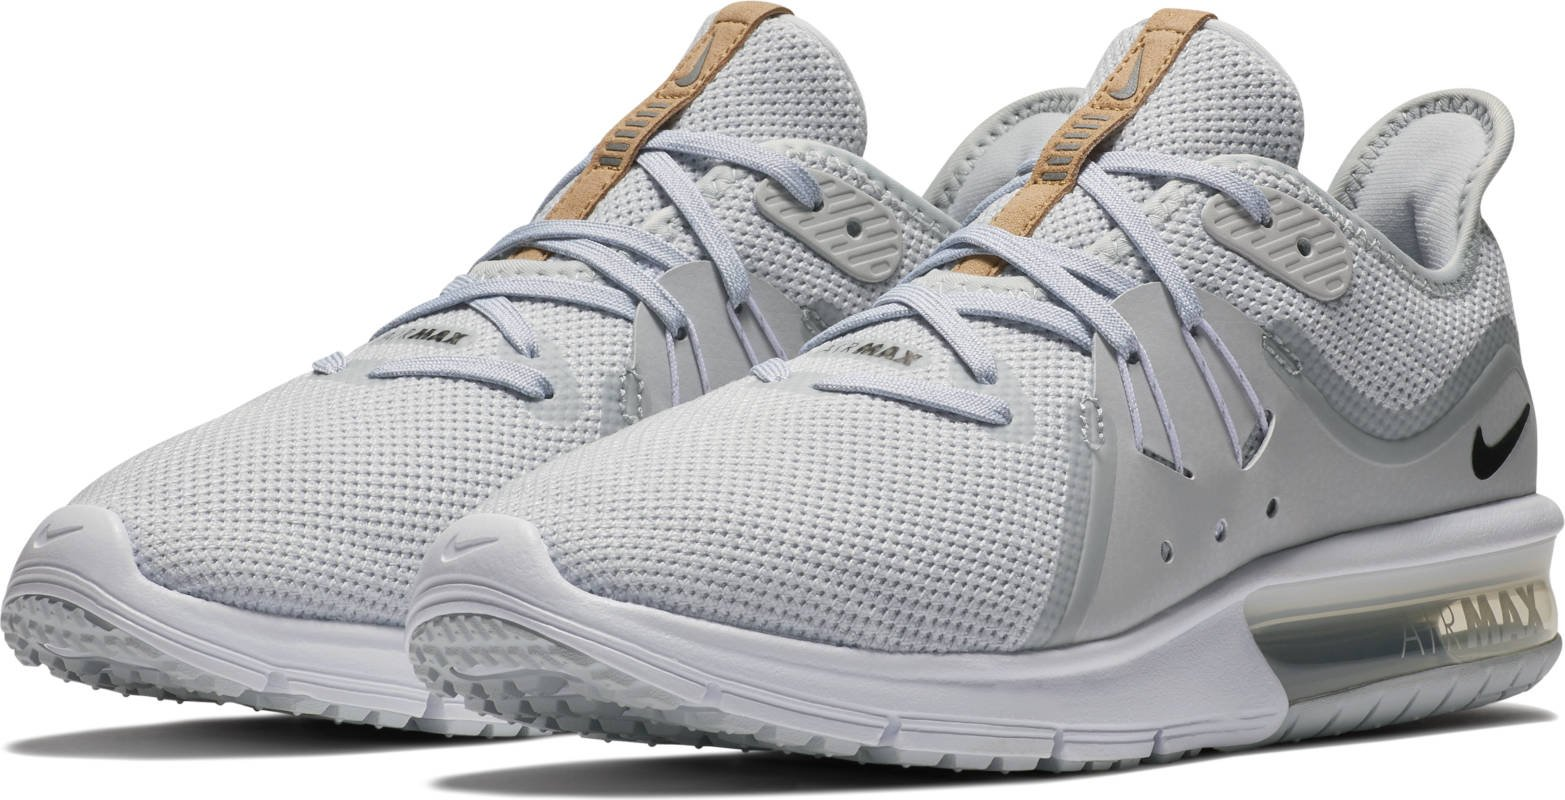 NIKE Air Max Sequent 3 Womens Style : 908993 Womens 908993-008 Size 5.5